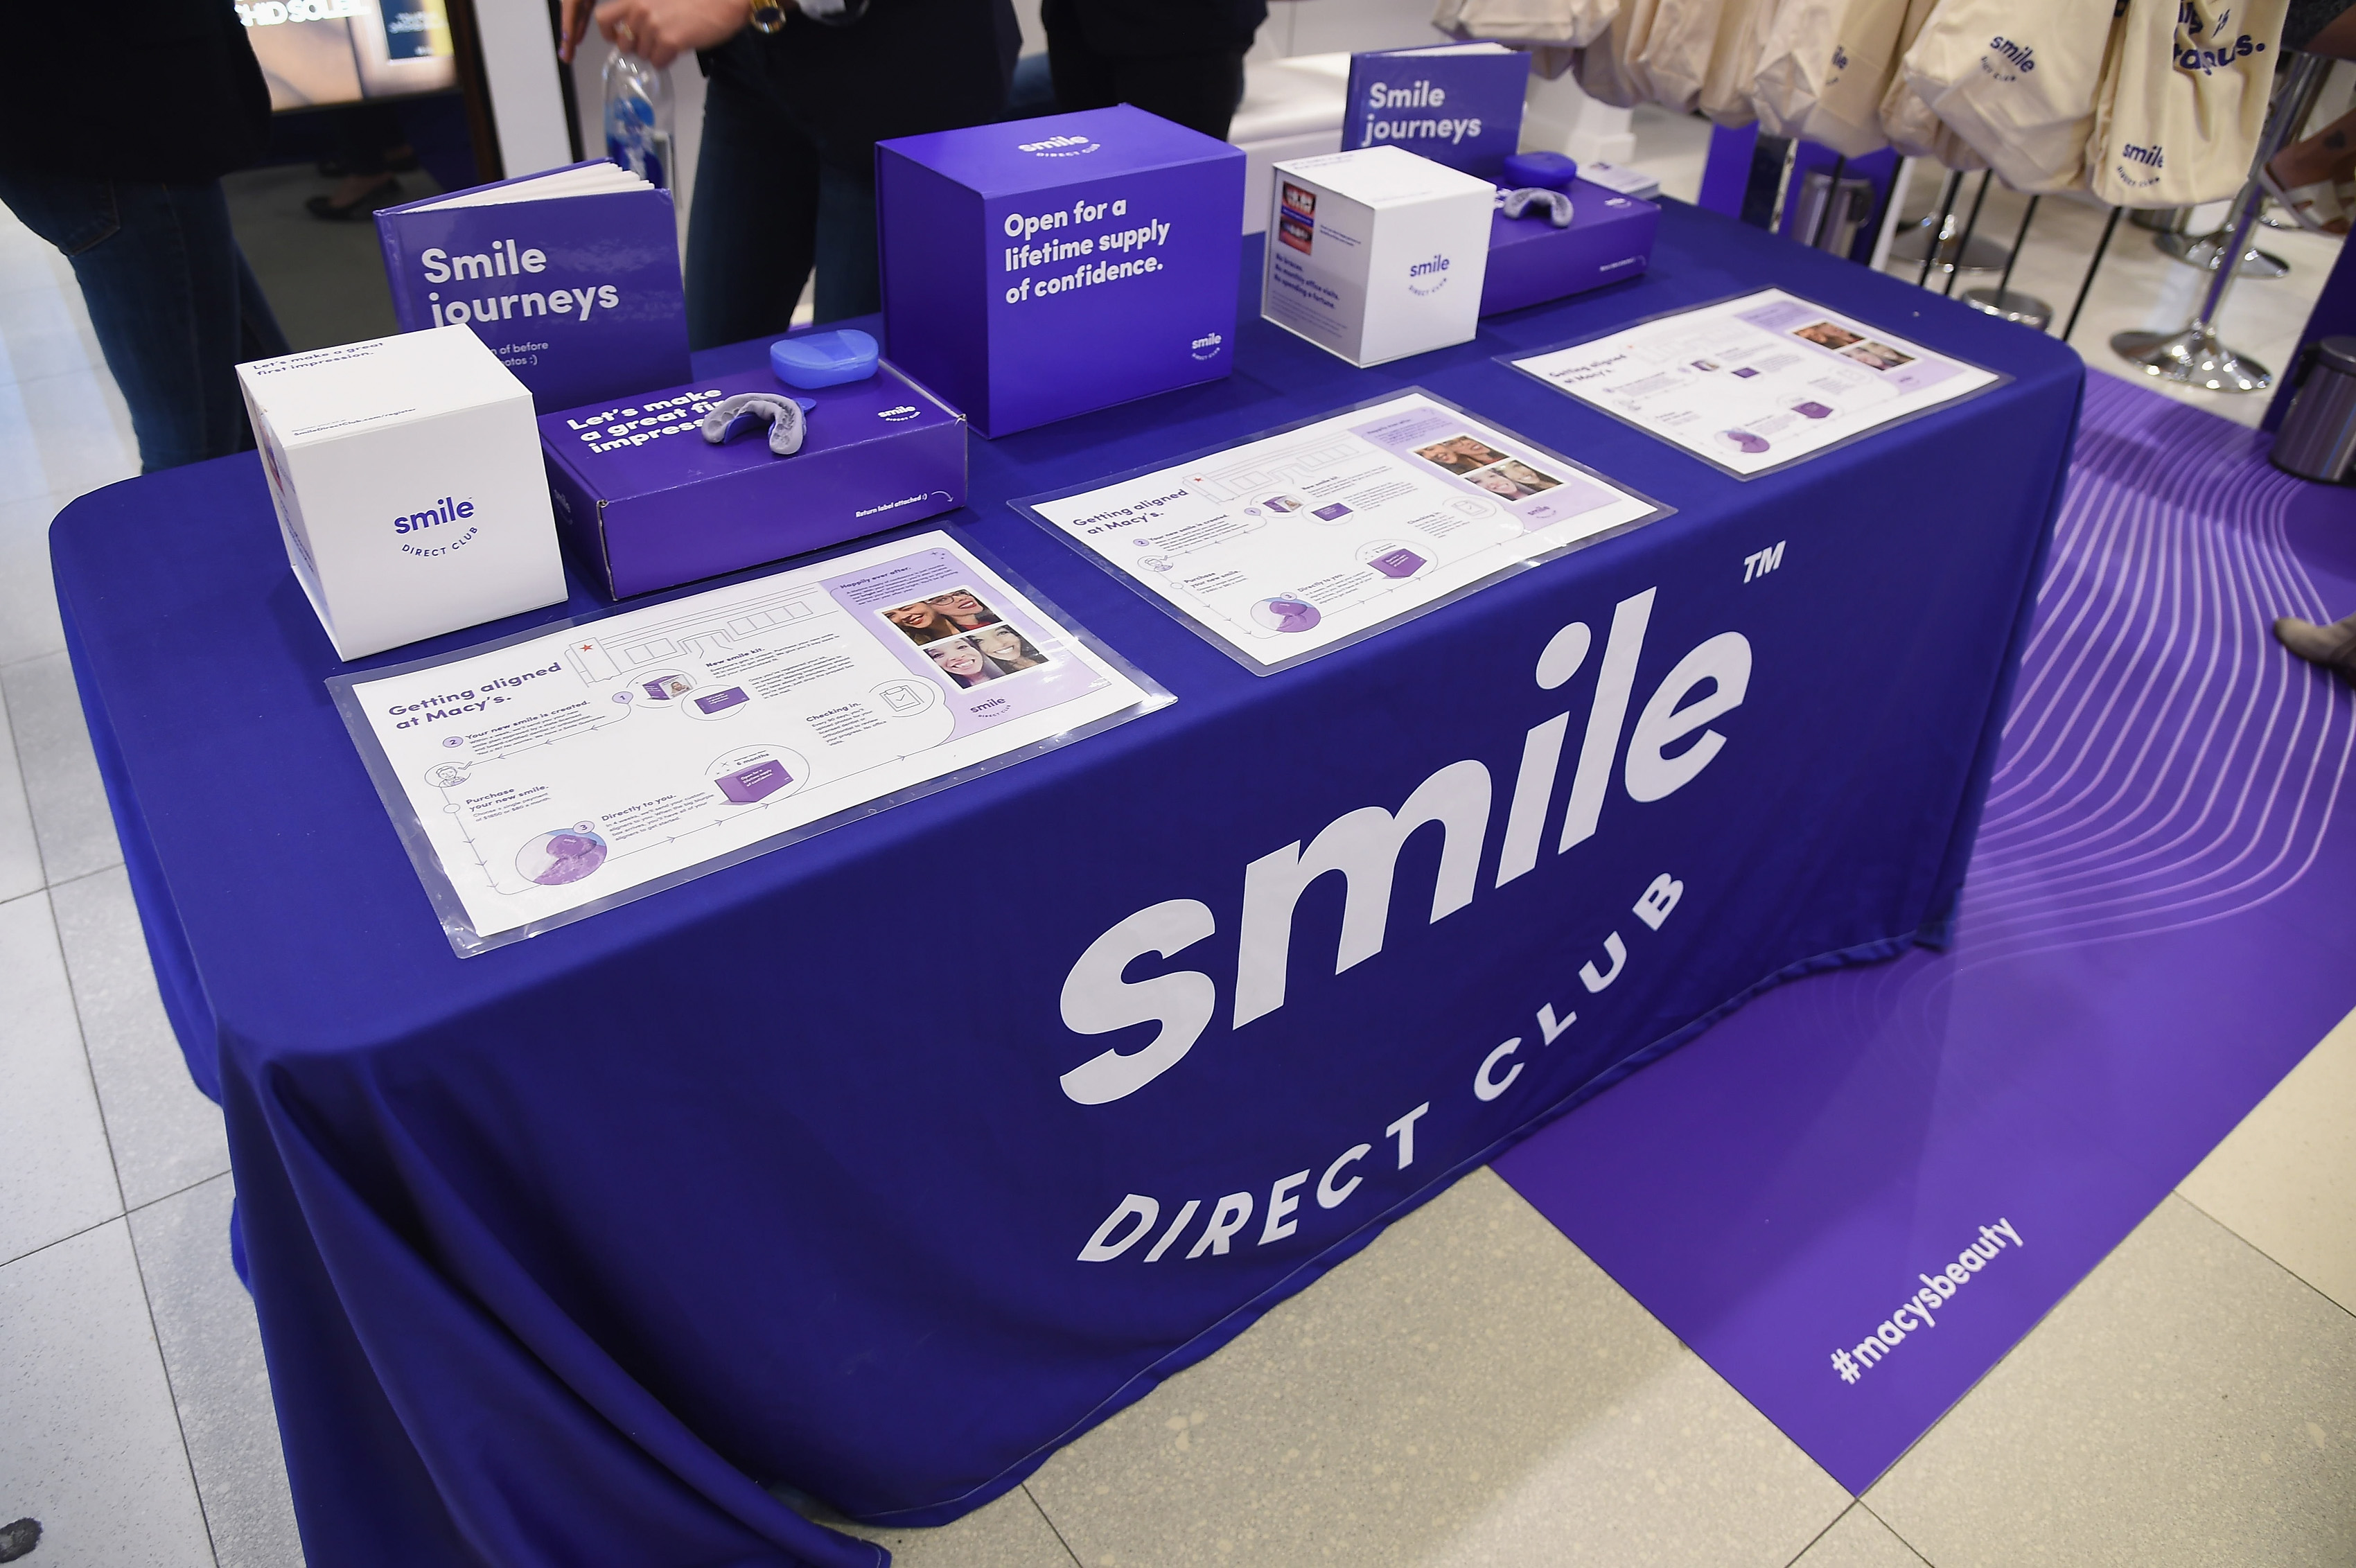 Following on the heels of WeWork and Cloudflare, SmileDirectClub, a aligner maker, has filed for an IPO on the Nasdaq.